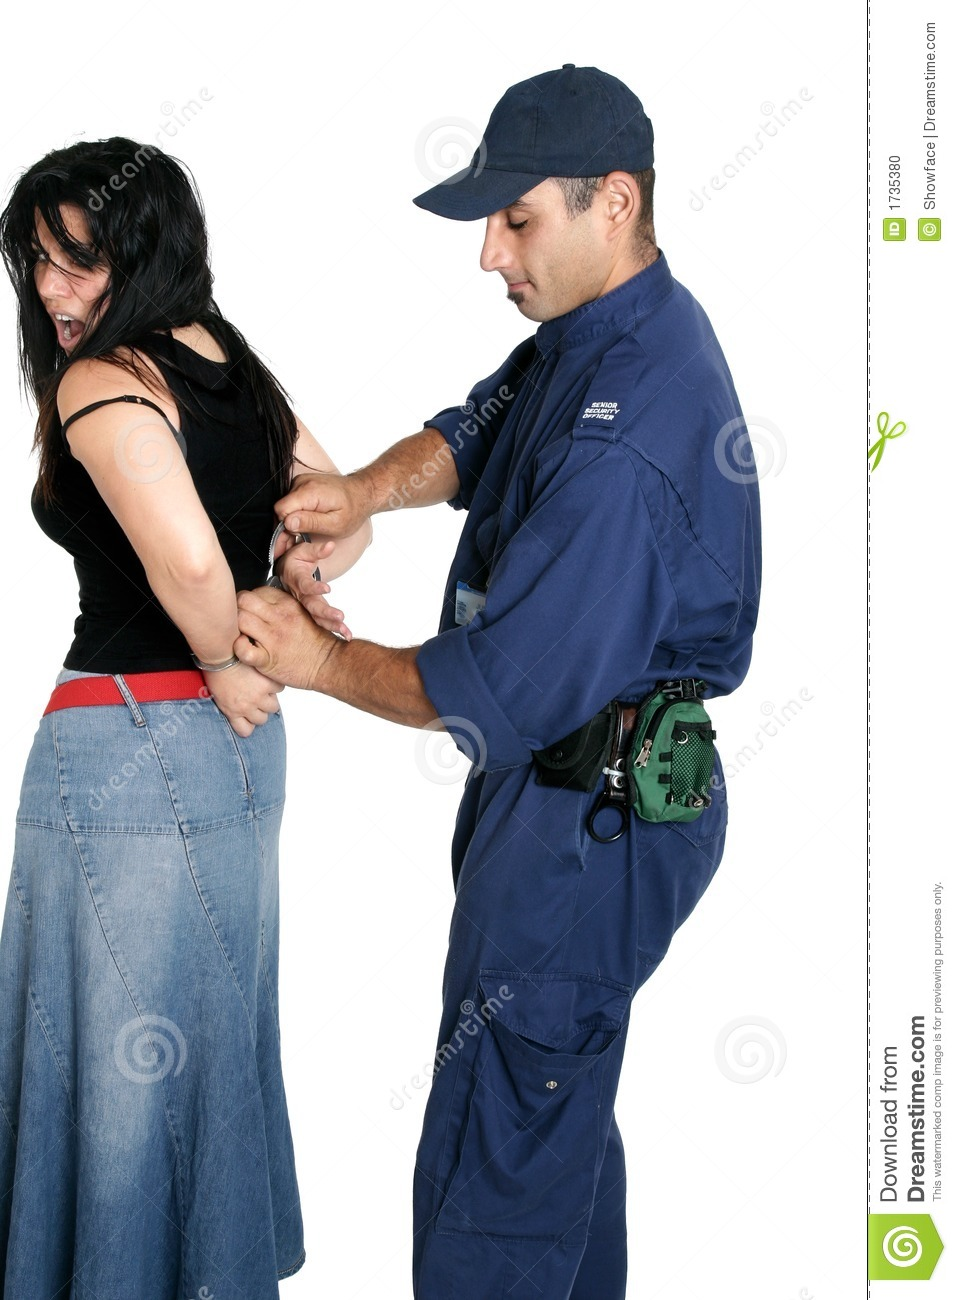 More similar stock images of ` Suspect thief being handcuffed `